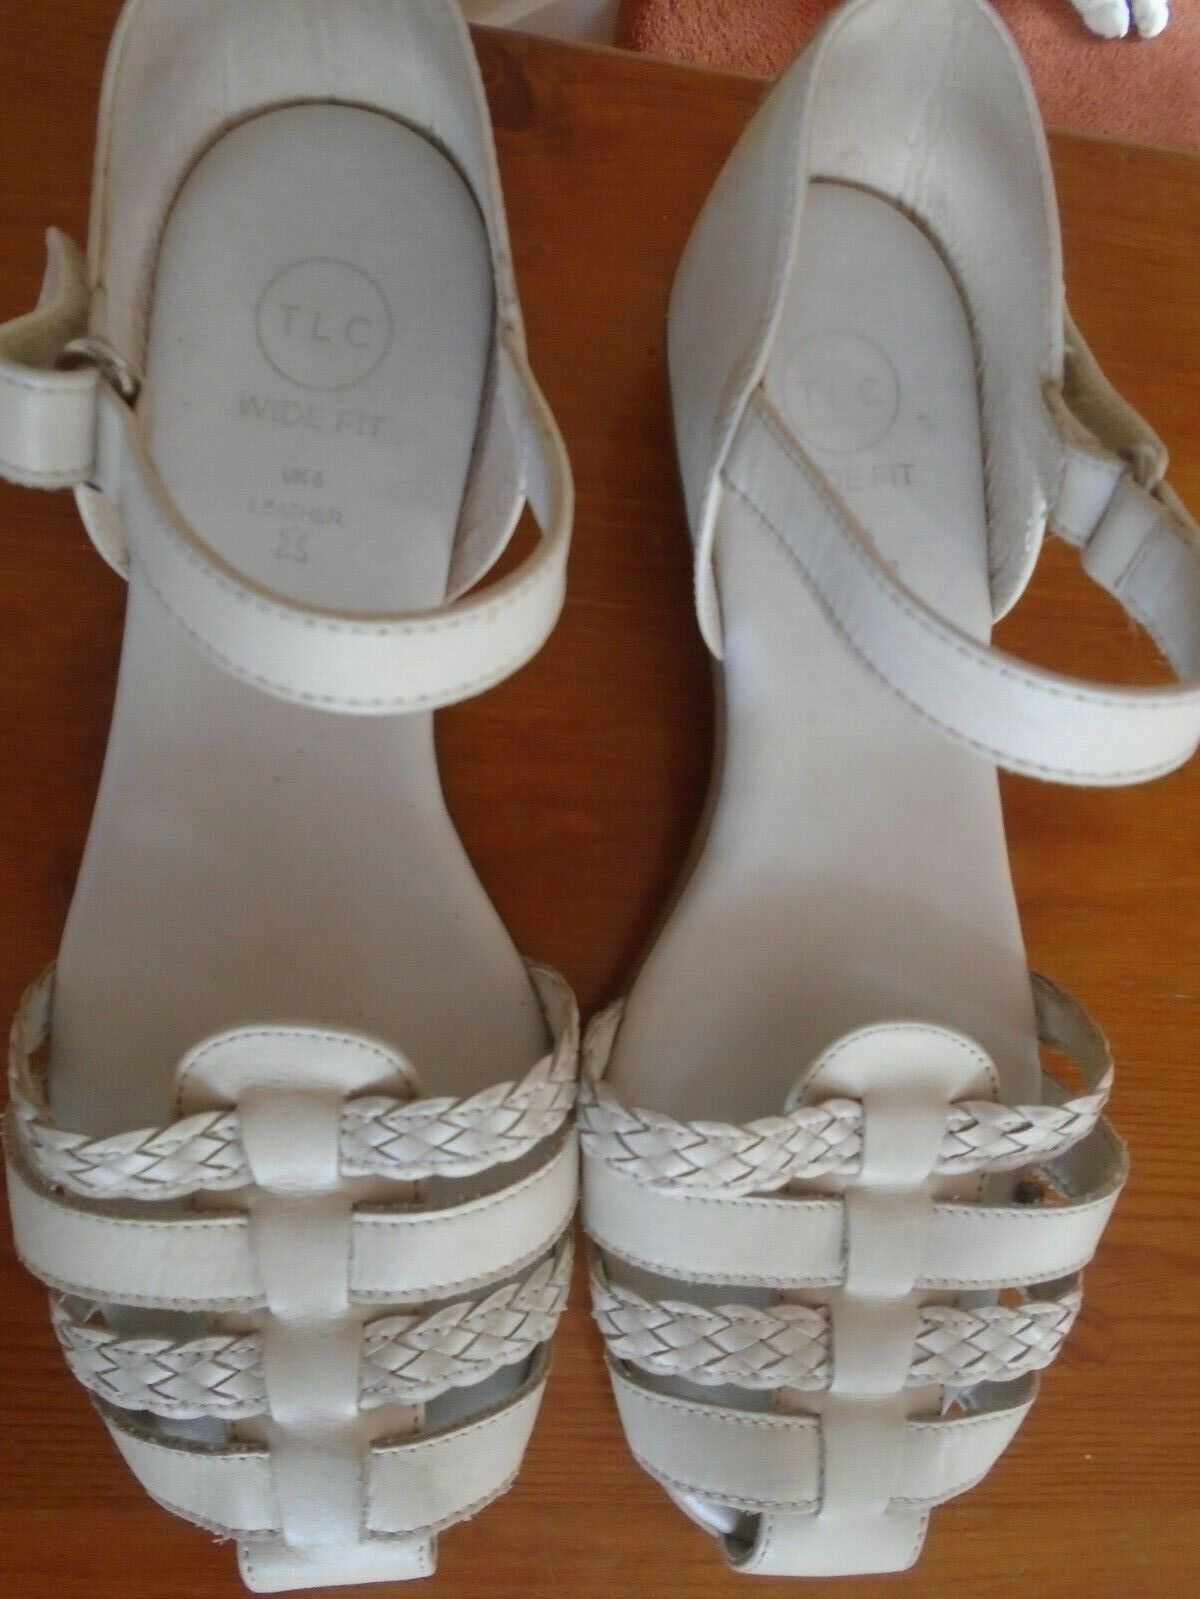 NEW SIZE 6 WIDE SHOES LEATHER CREAM SUMMER STYLE ADJUSTABE STRAP from TLC